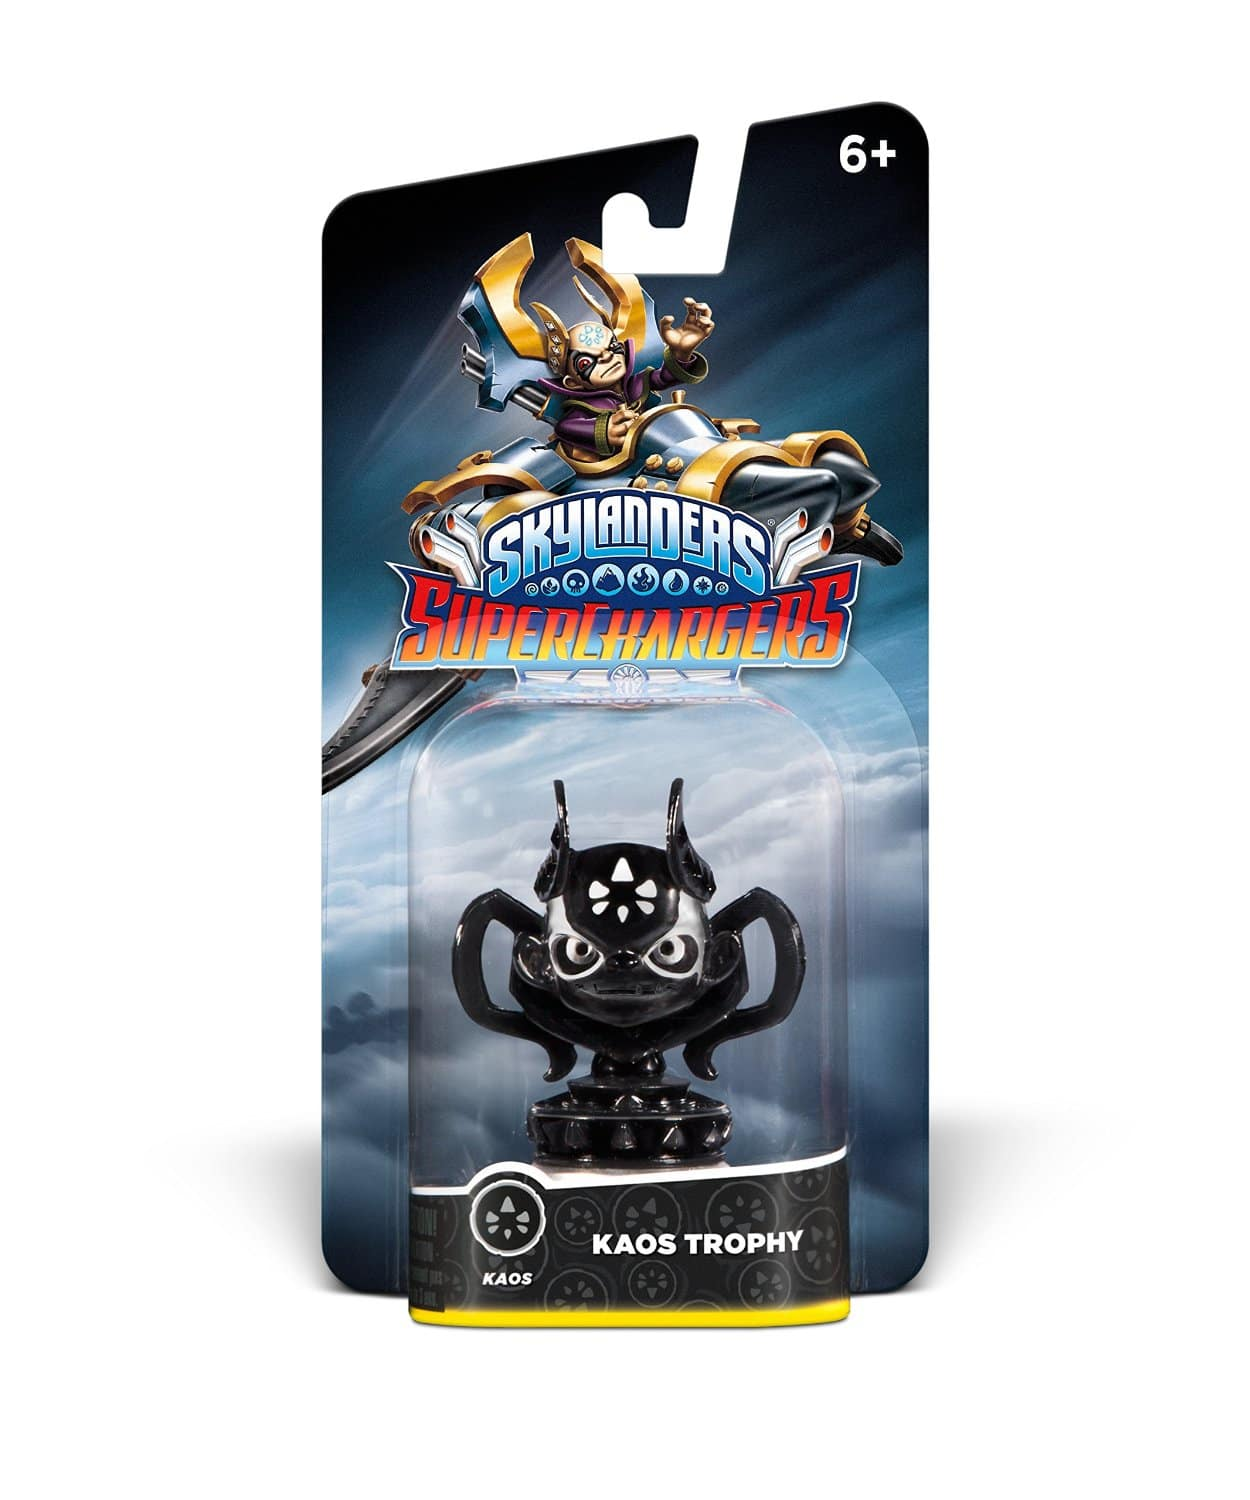 Activision Skylanders Superchargers Kaos Trophy Character Pack, $3.99 (for Prime Members)